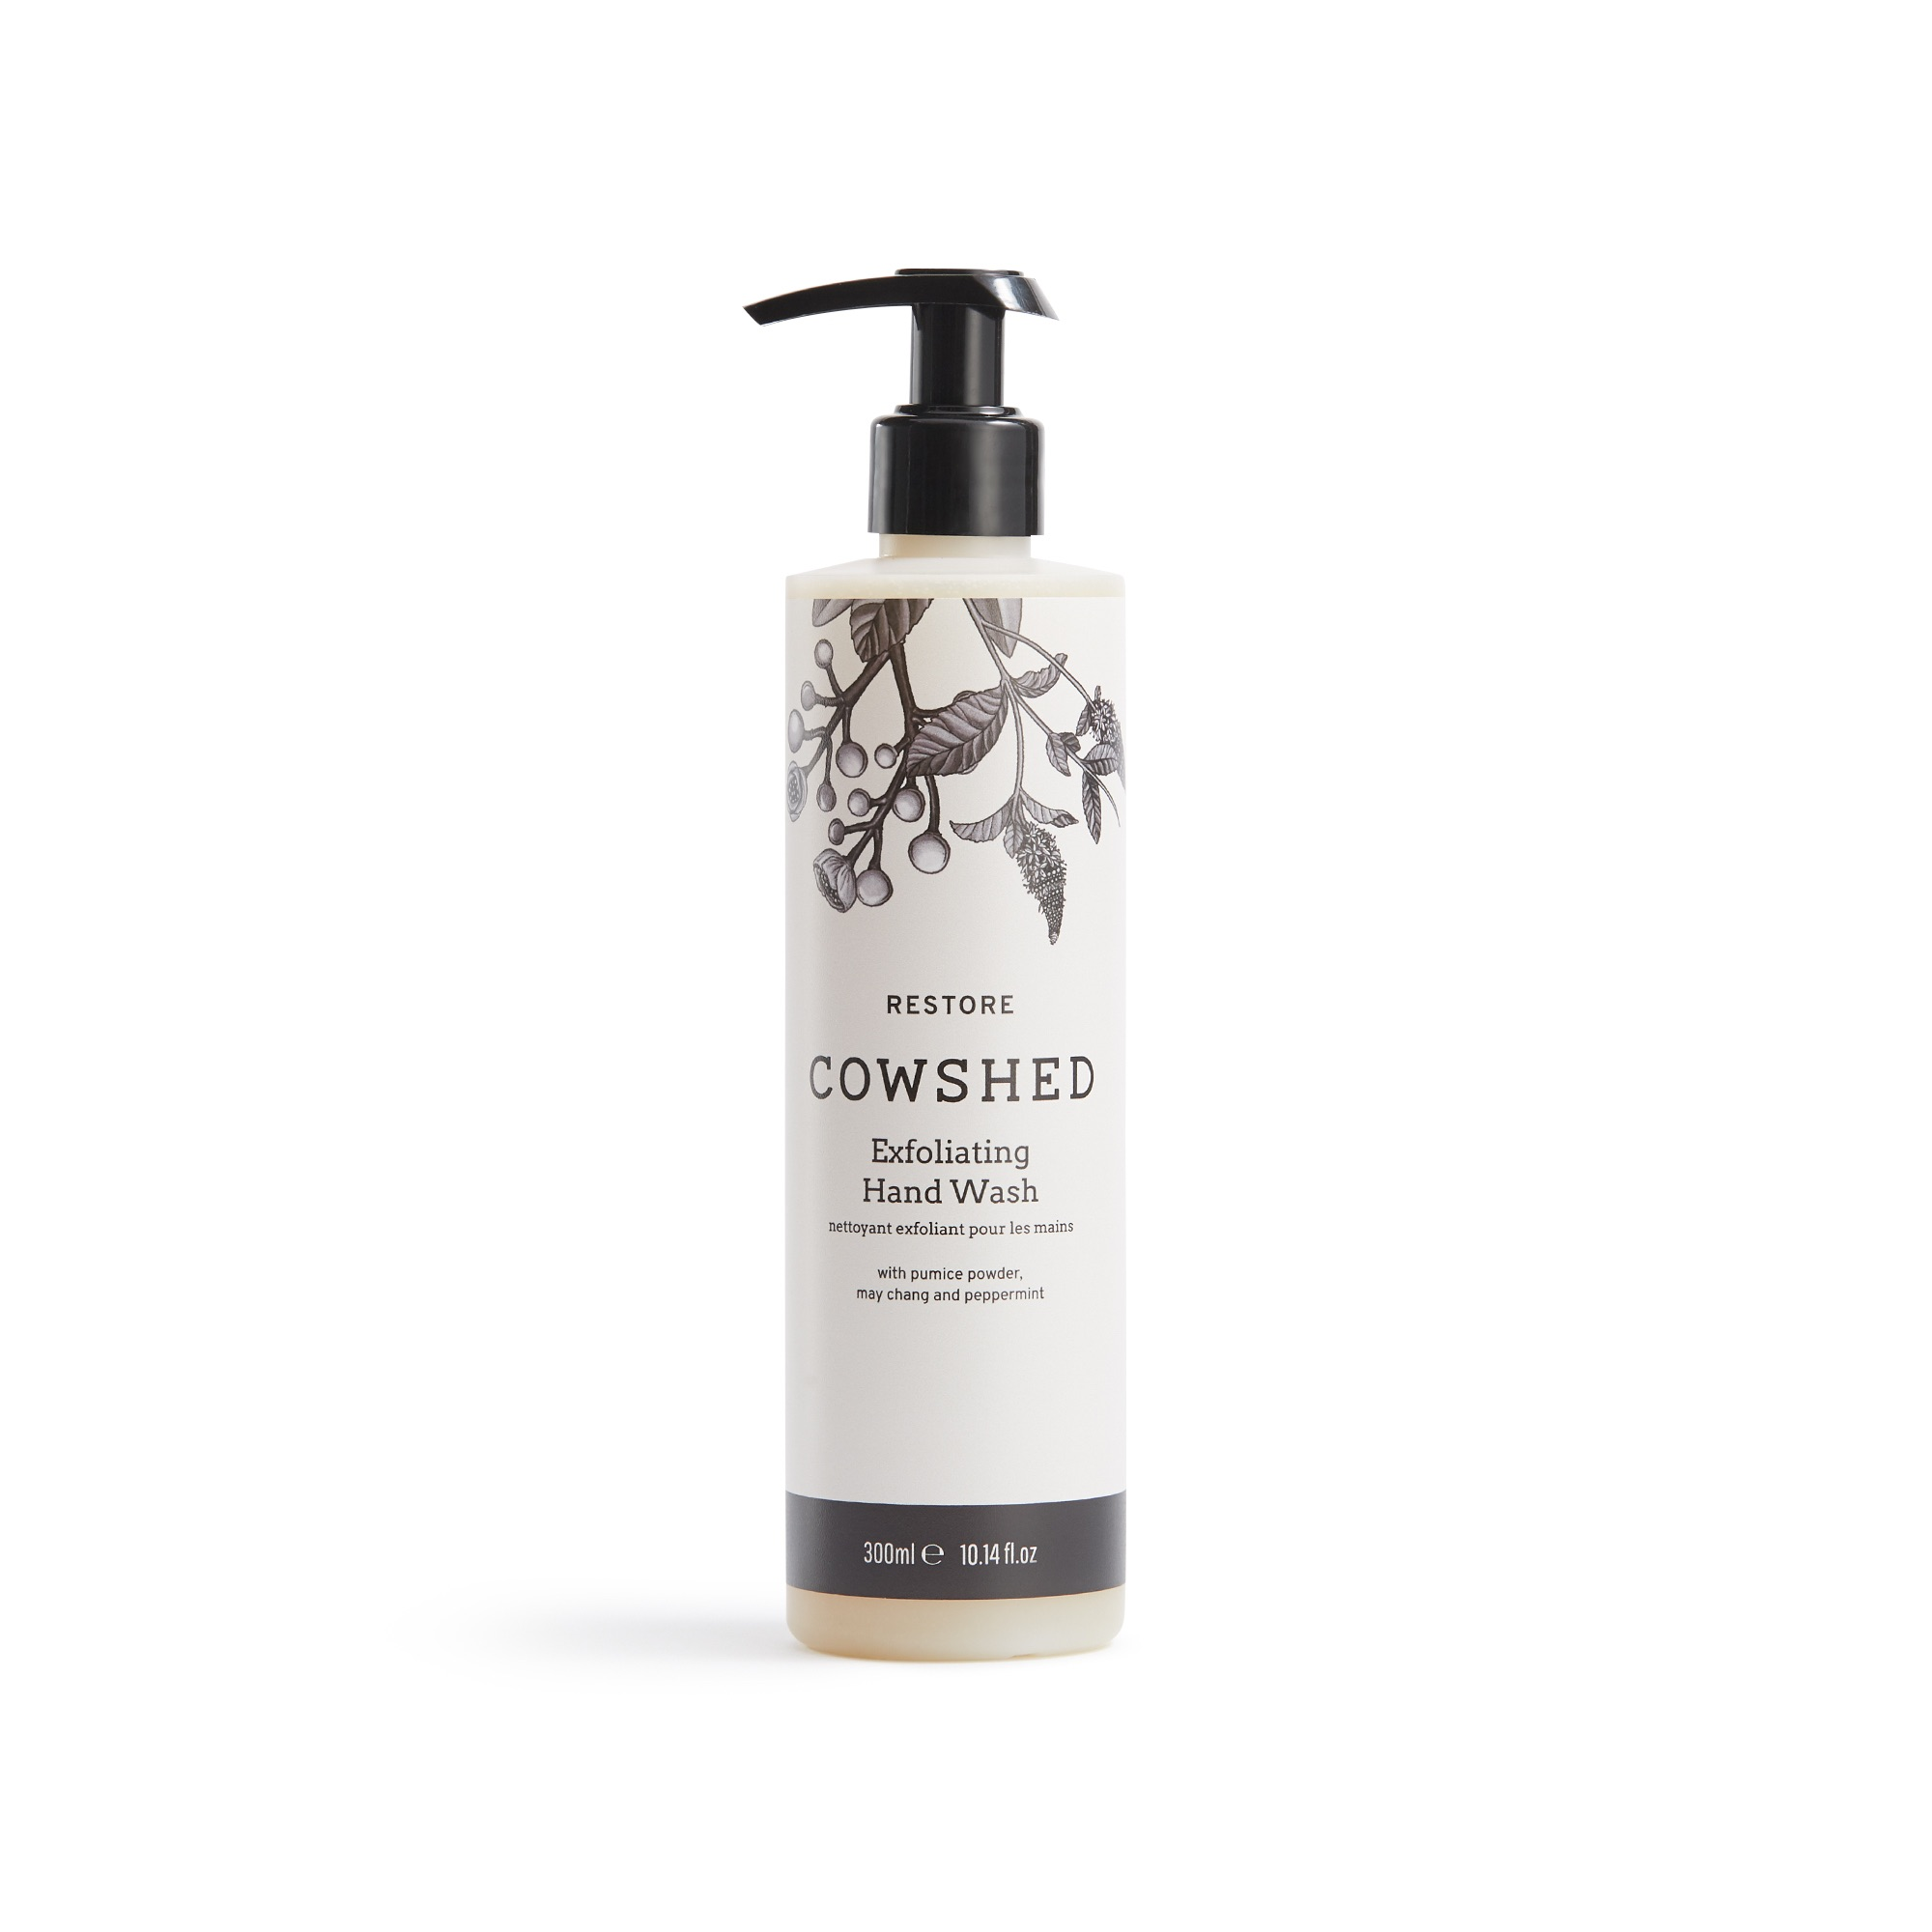 Cowshed RESTORE Exfoliating Hand Wash 10.5oz (300ml)